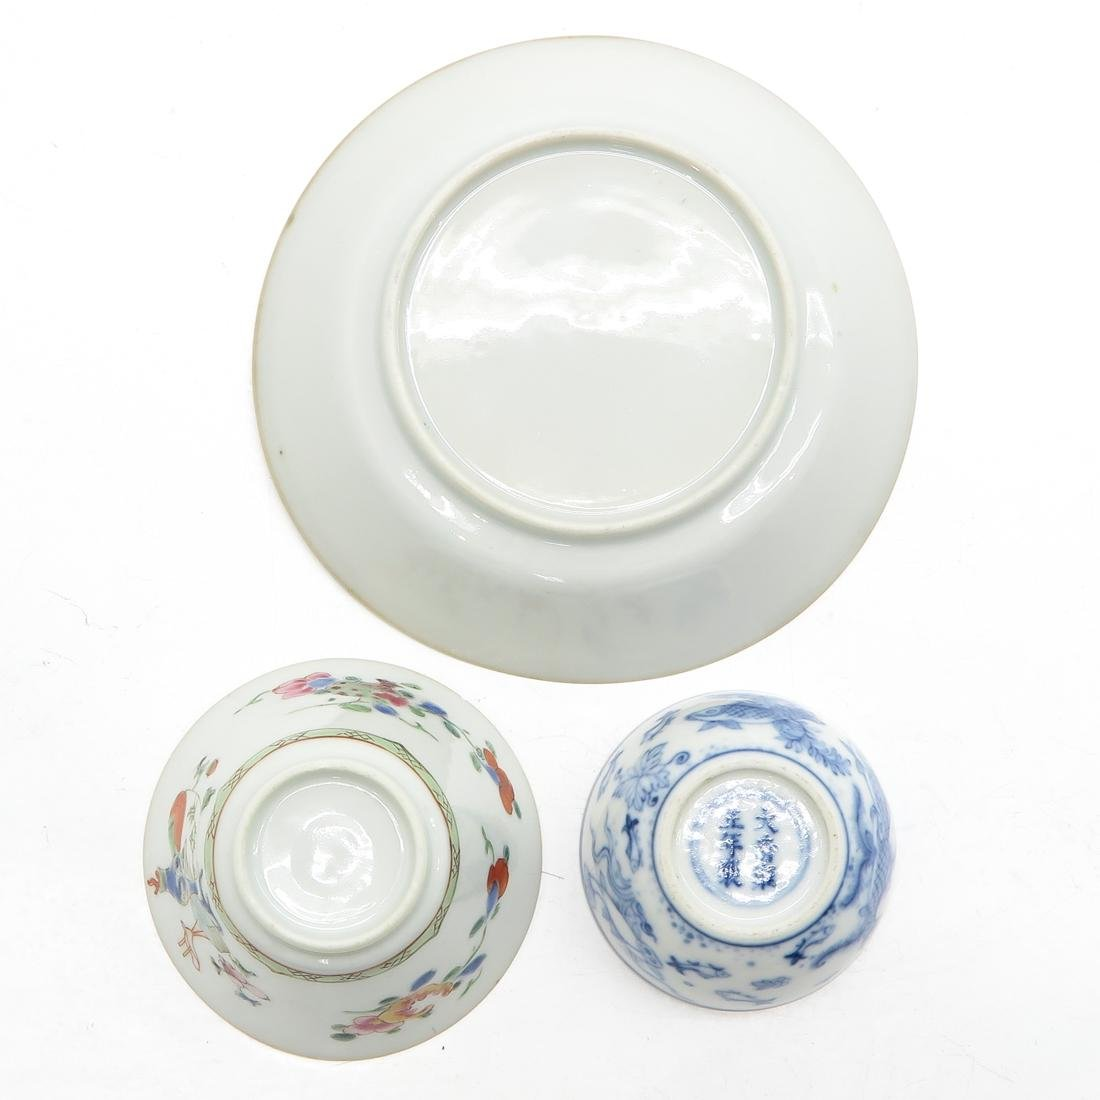 Cups and Saucer - 6